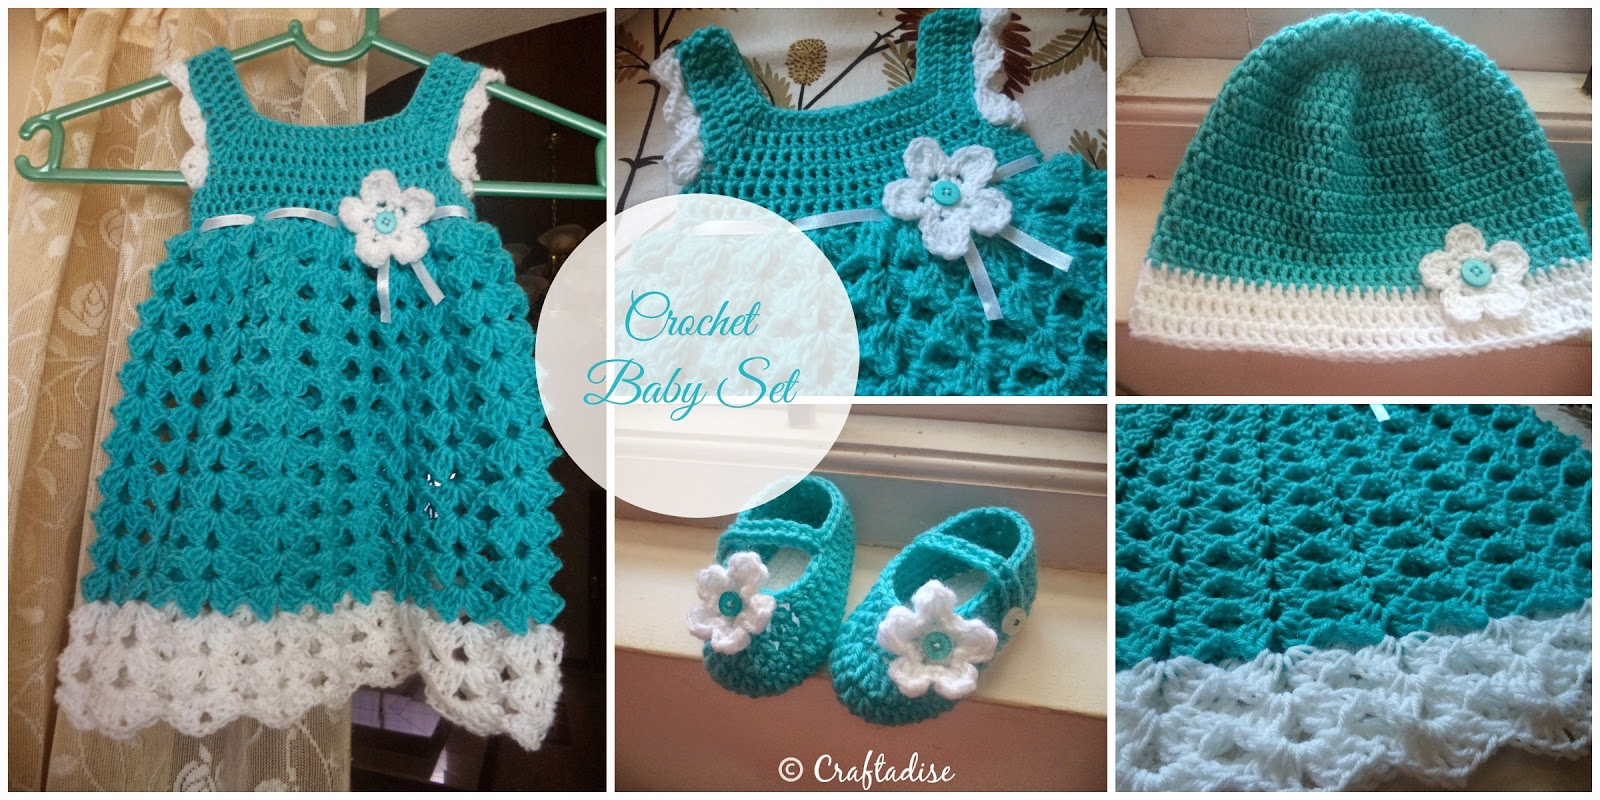 My first Crochet Baby Dress with Matching Hat and Booties